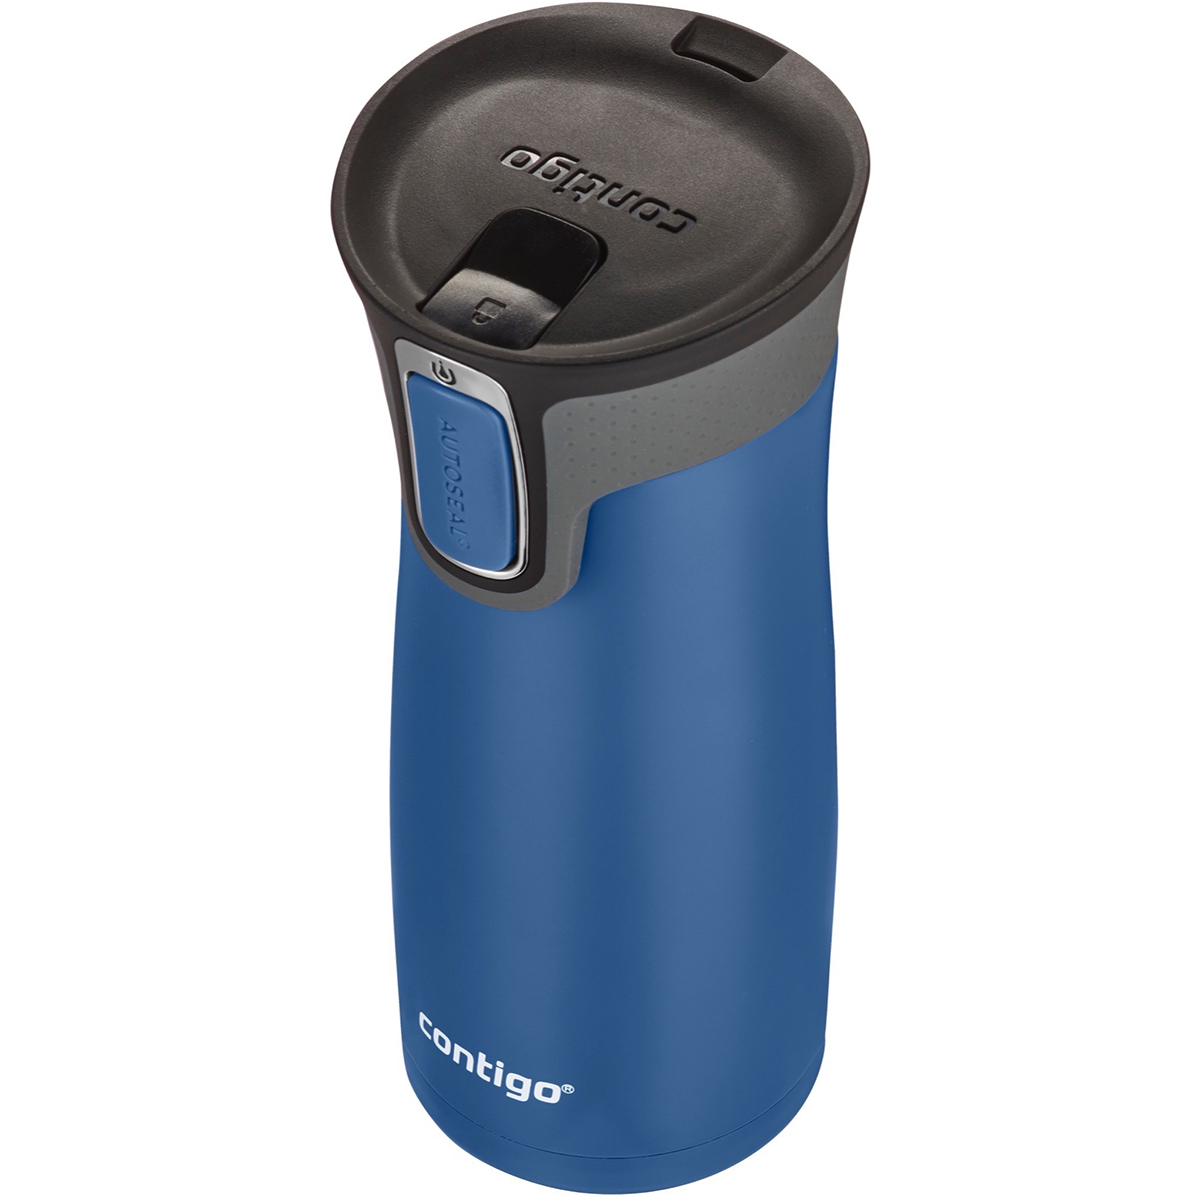 Contigo-16-oz-West-Loop-2-0-AutoSeal-Insulated-Stainless-Steel-Travel-Mug thumbnail 16